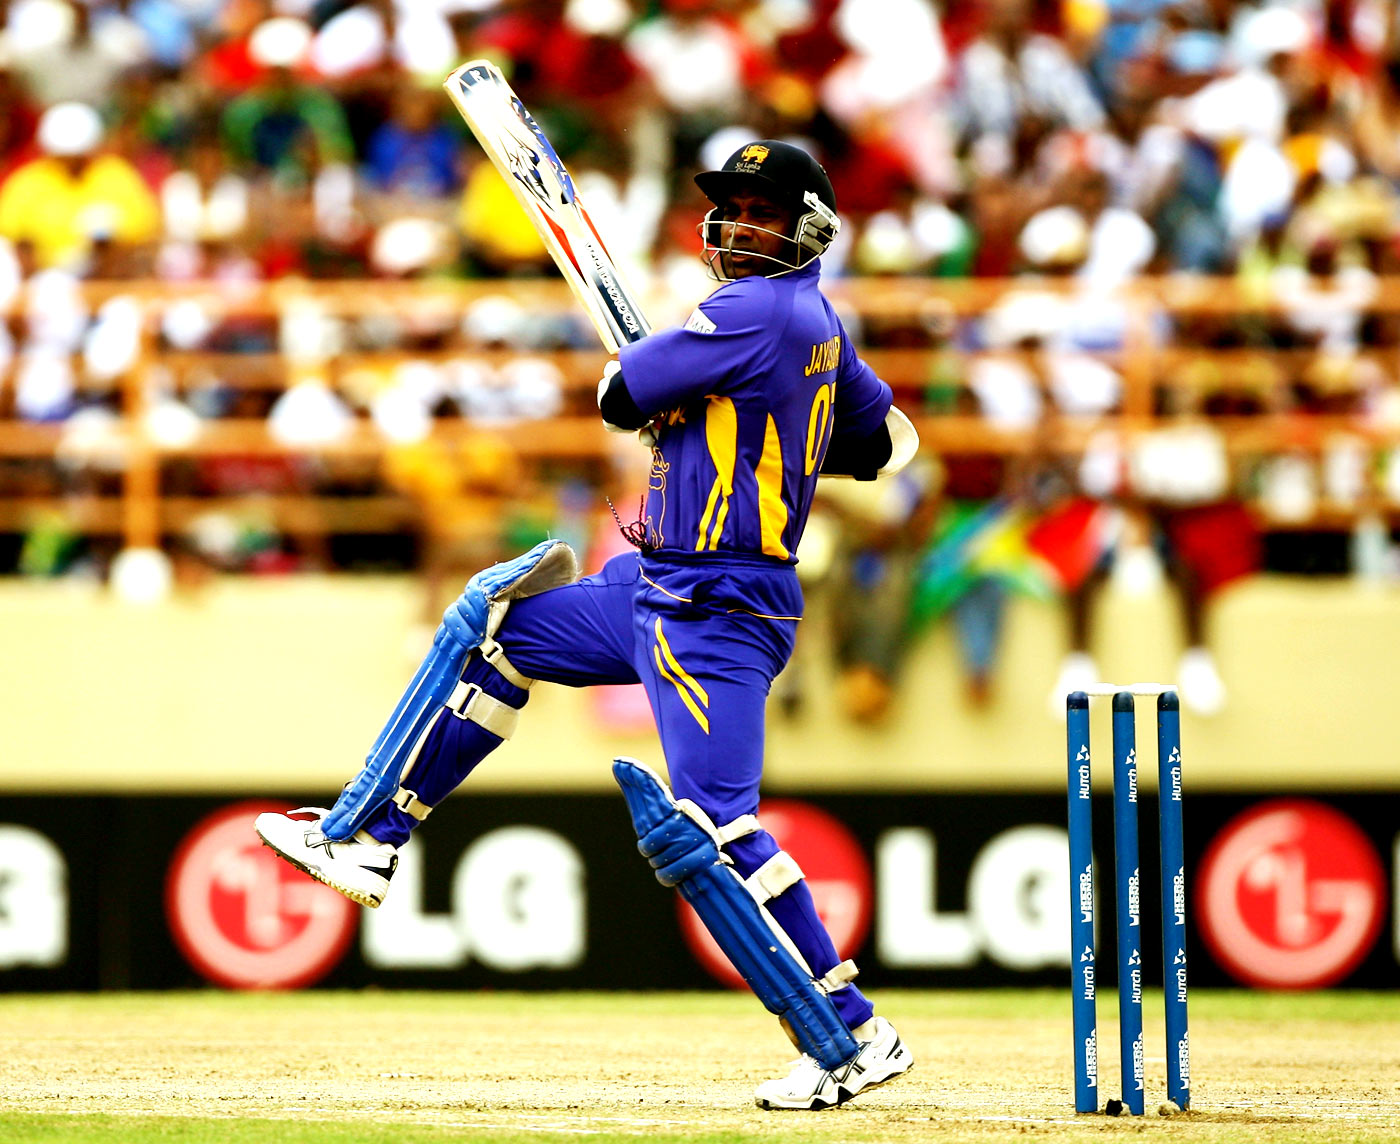 Jayasuriya: flayed 'em all